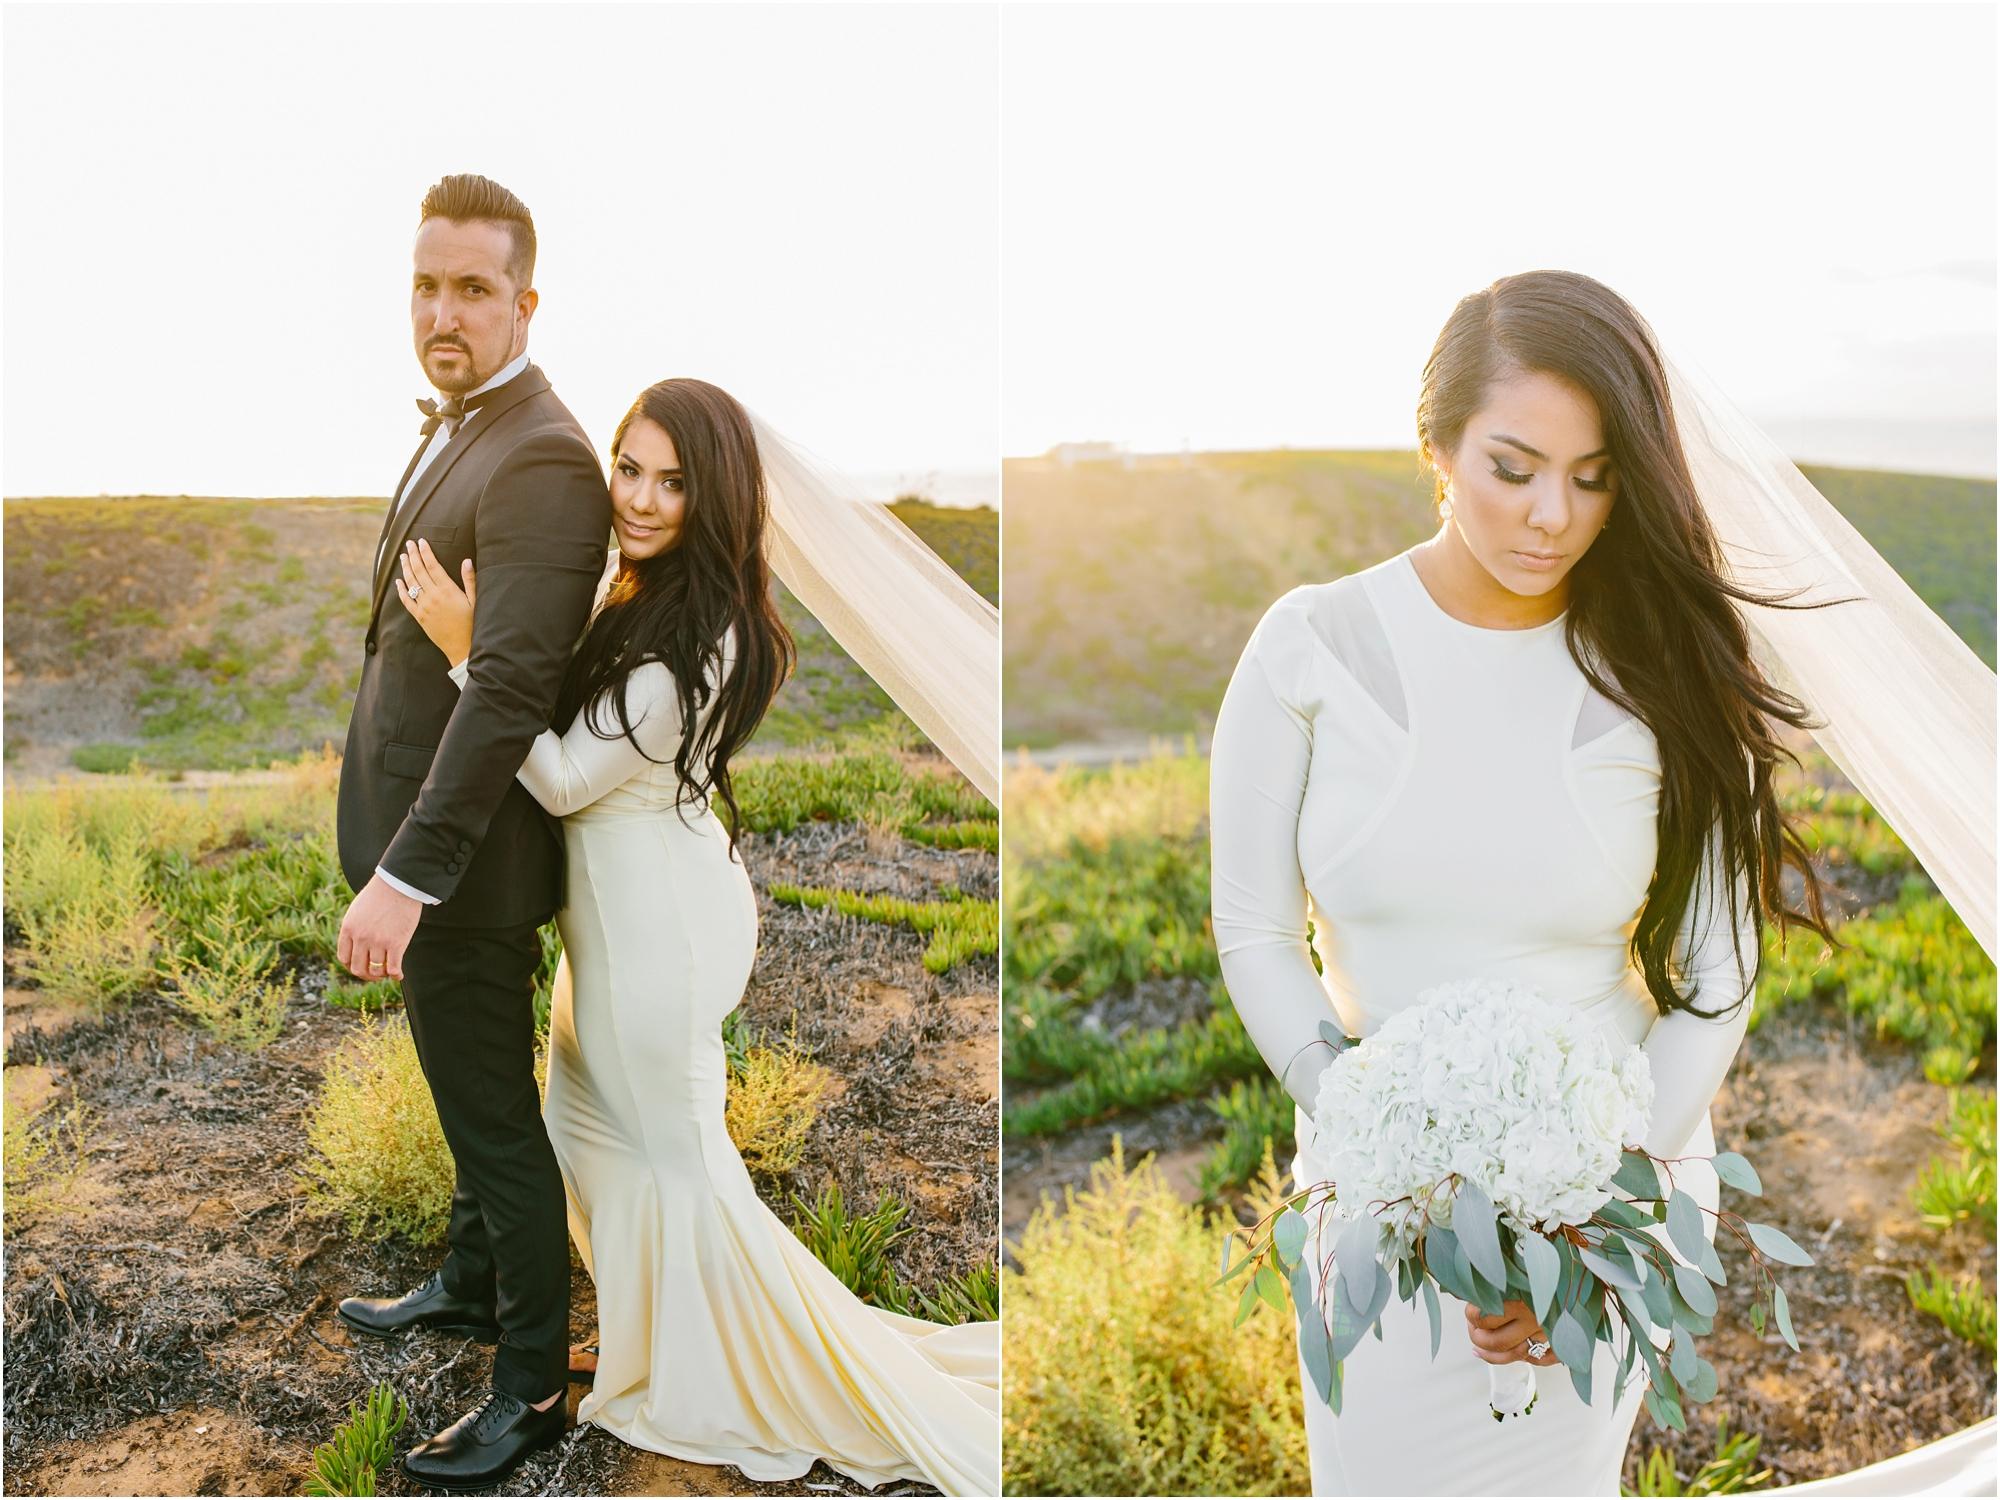 Southern California Bride and Groom - http://brittneyhannonphotography.com